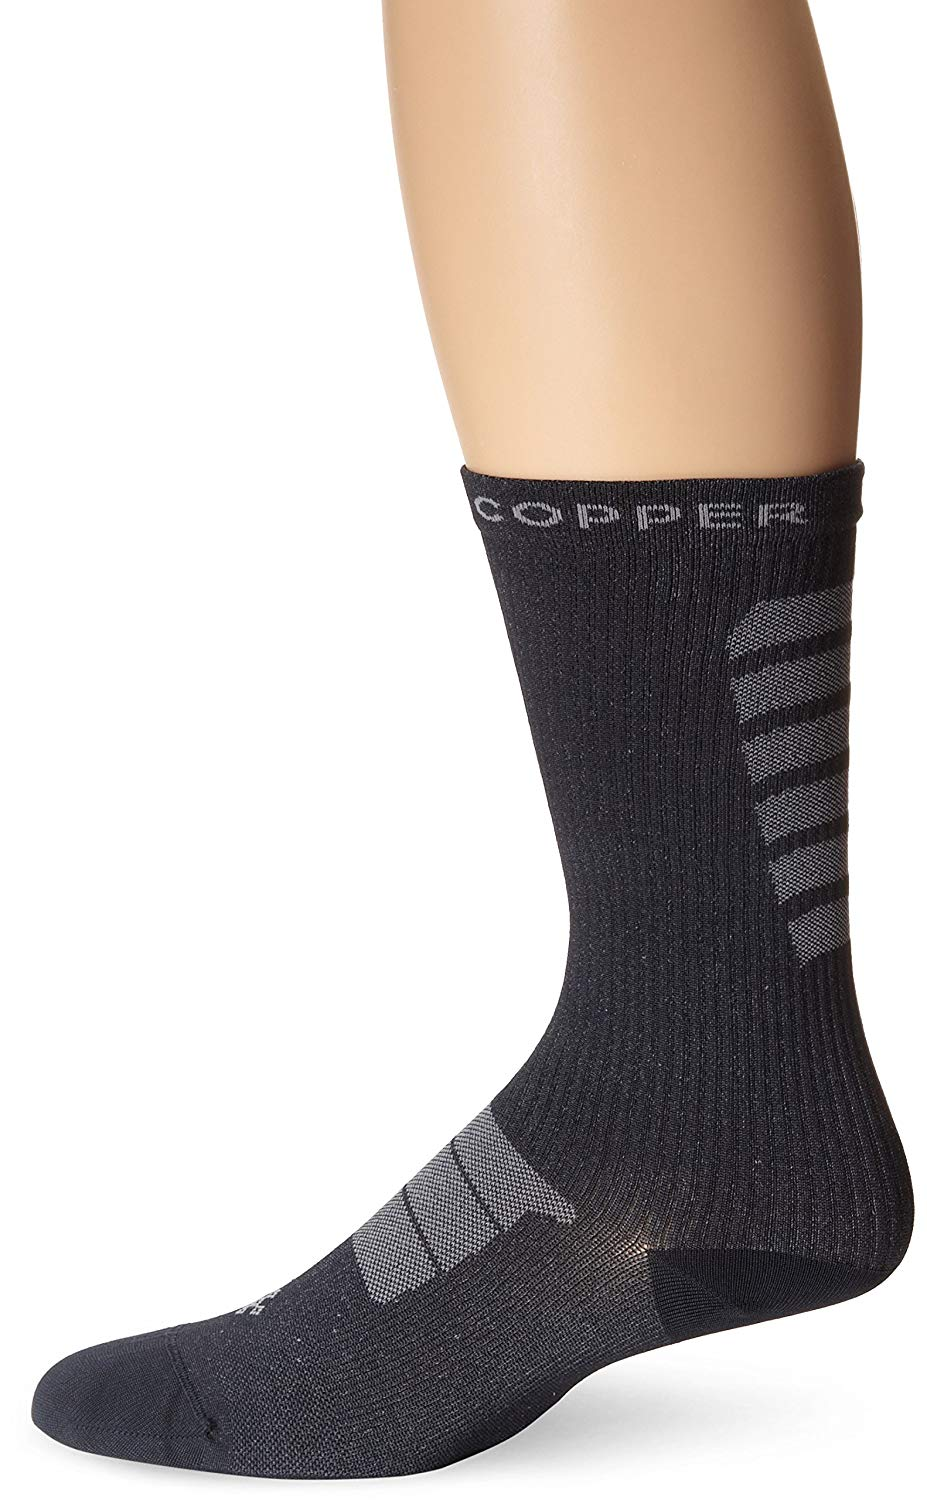 Tommie Copper Men's Recovery Kick Start Crew Dress Sock Size 6 to 8.5 (2 PACK)